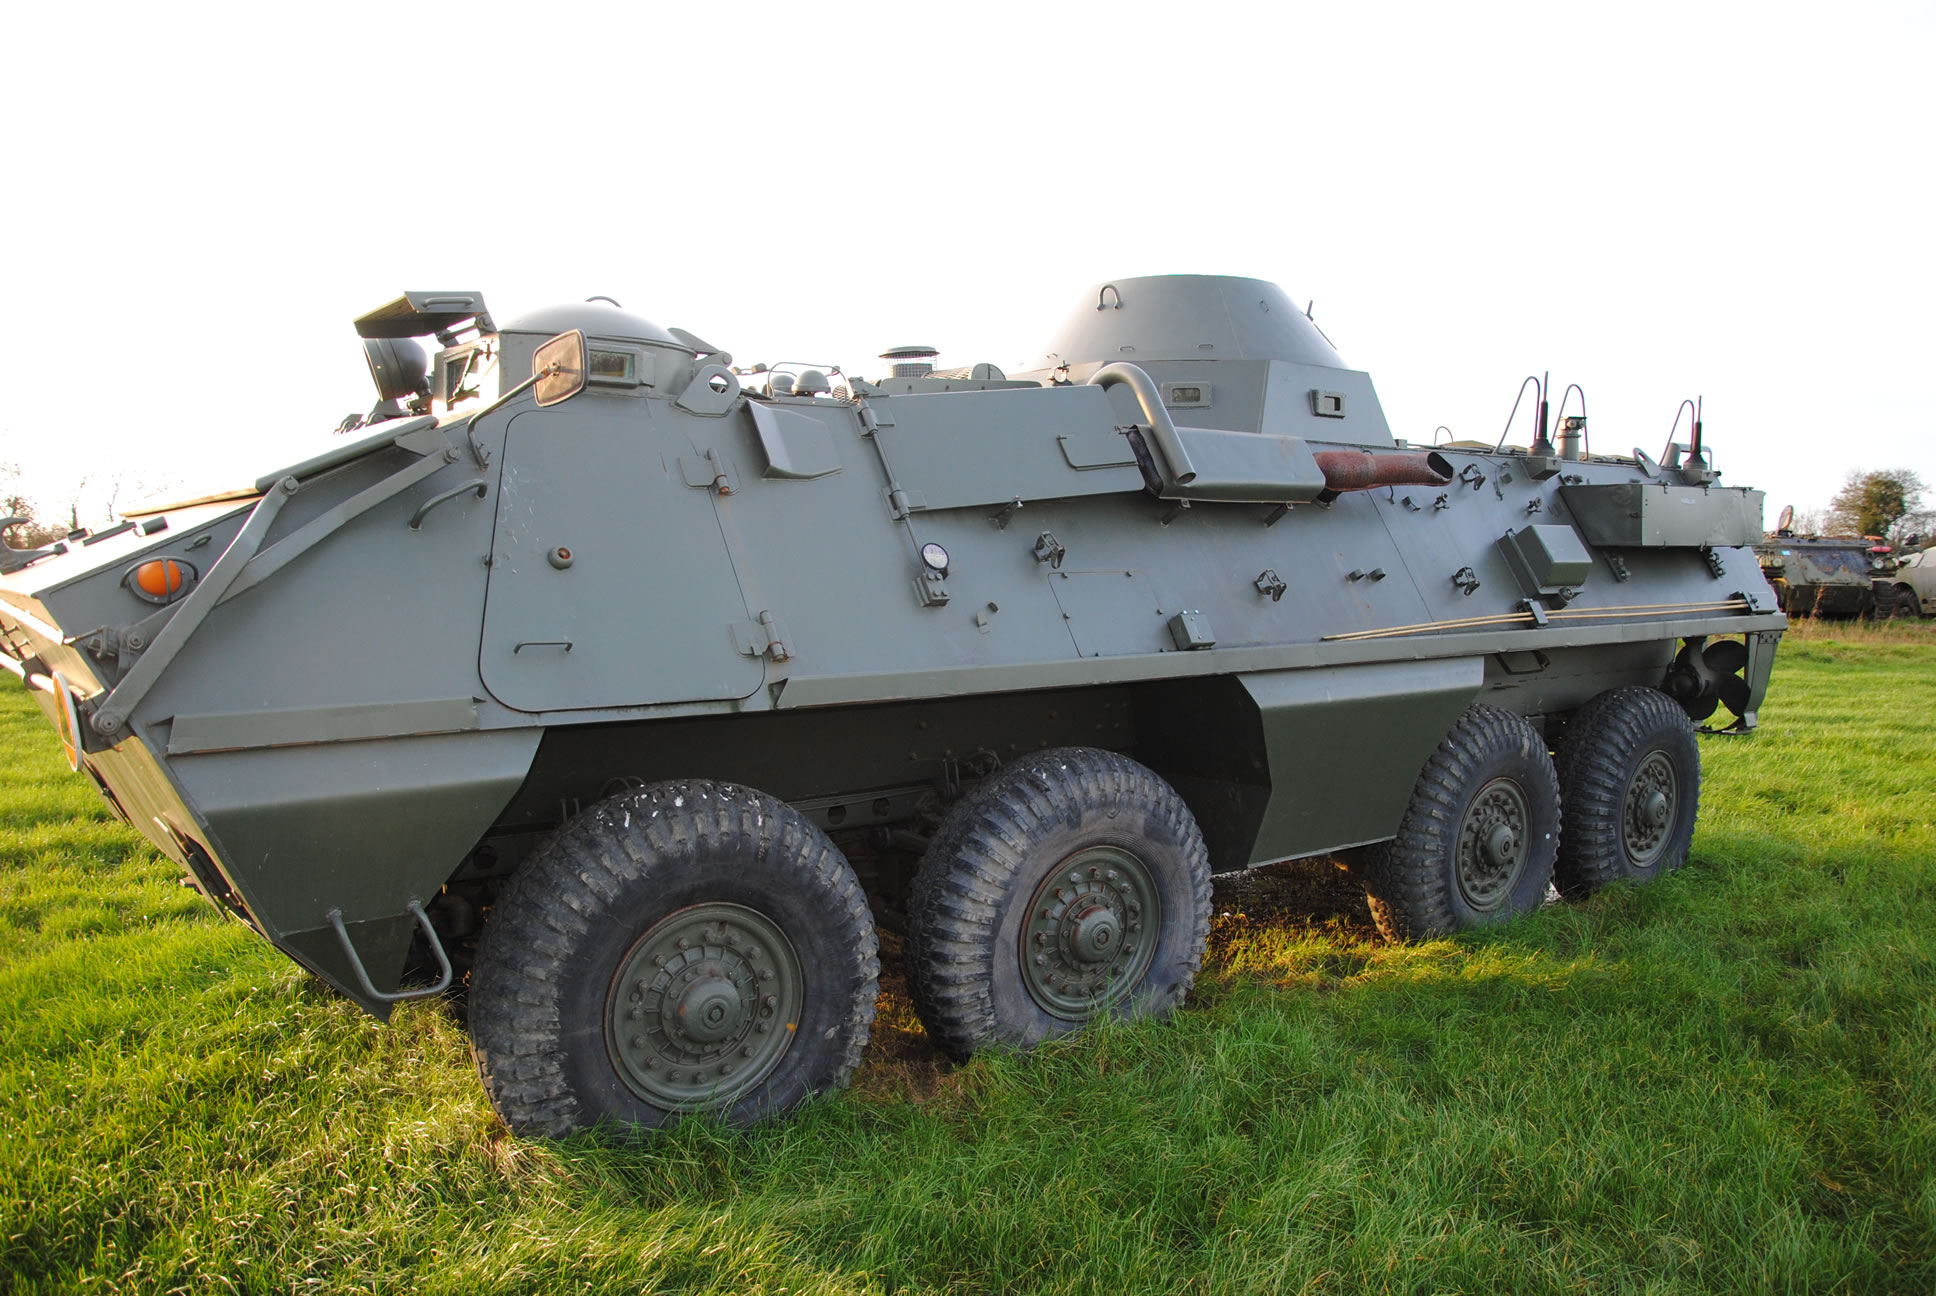 OT 64 SKOT 8x8 Armoured Personnel Carrier For Sale UK £18 000